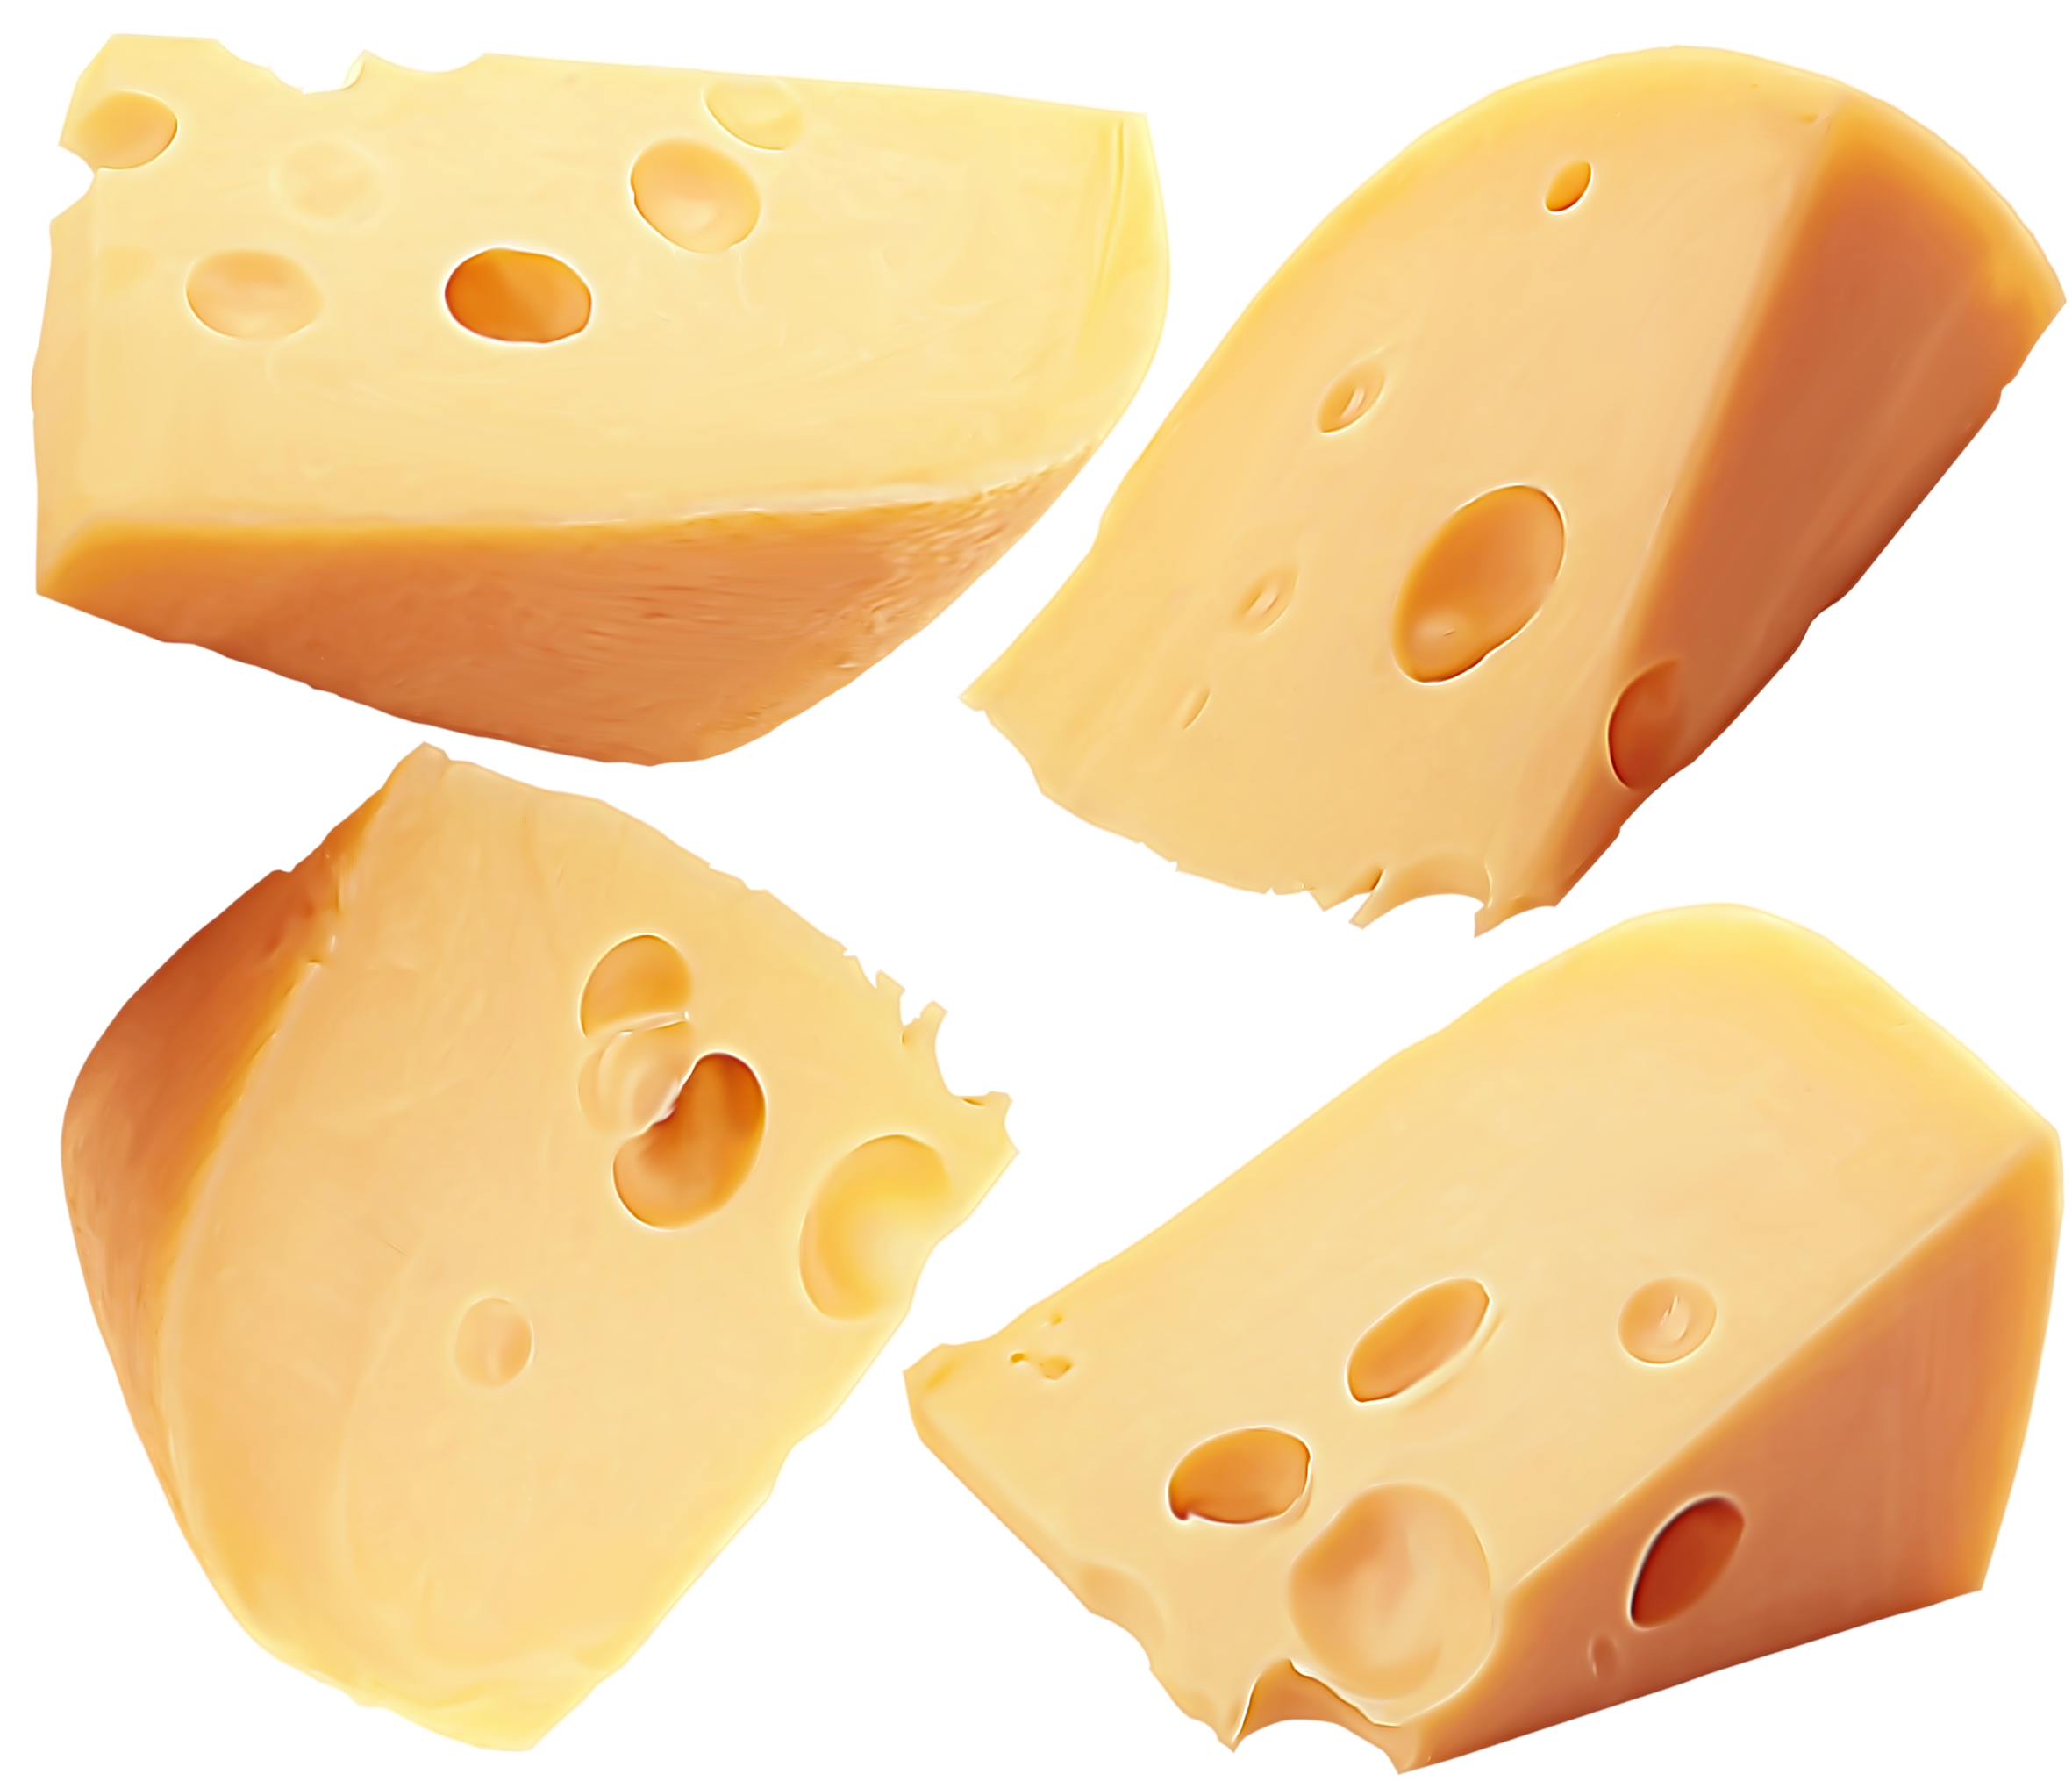 Cheese Png - Cheese, Transparent background PNG HD thumbnail